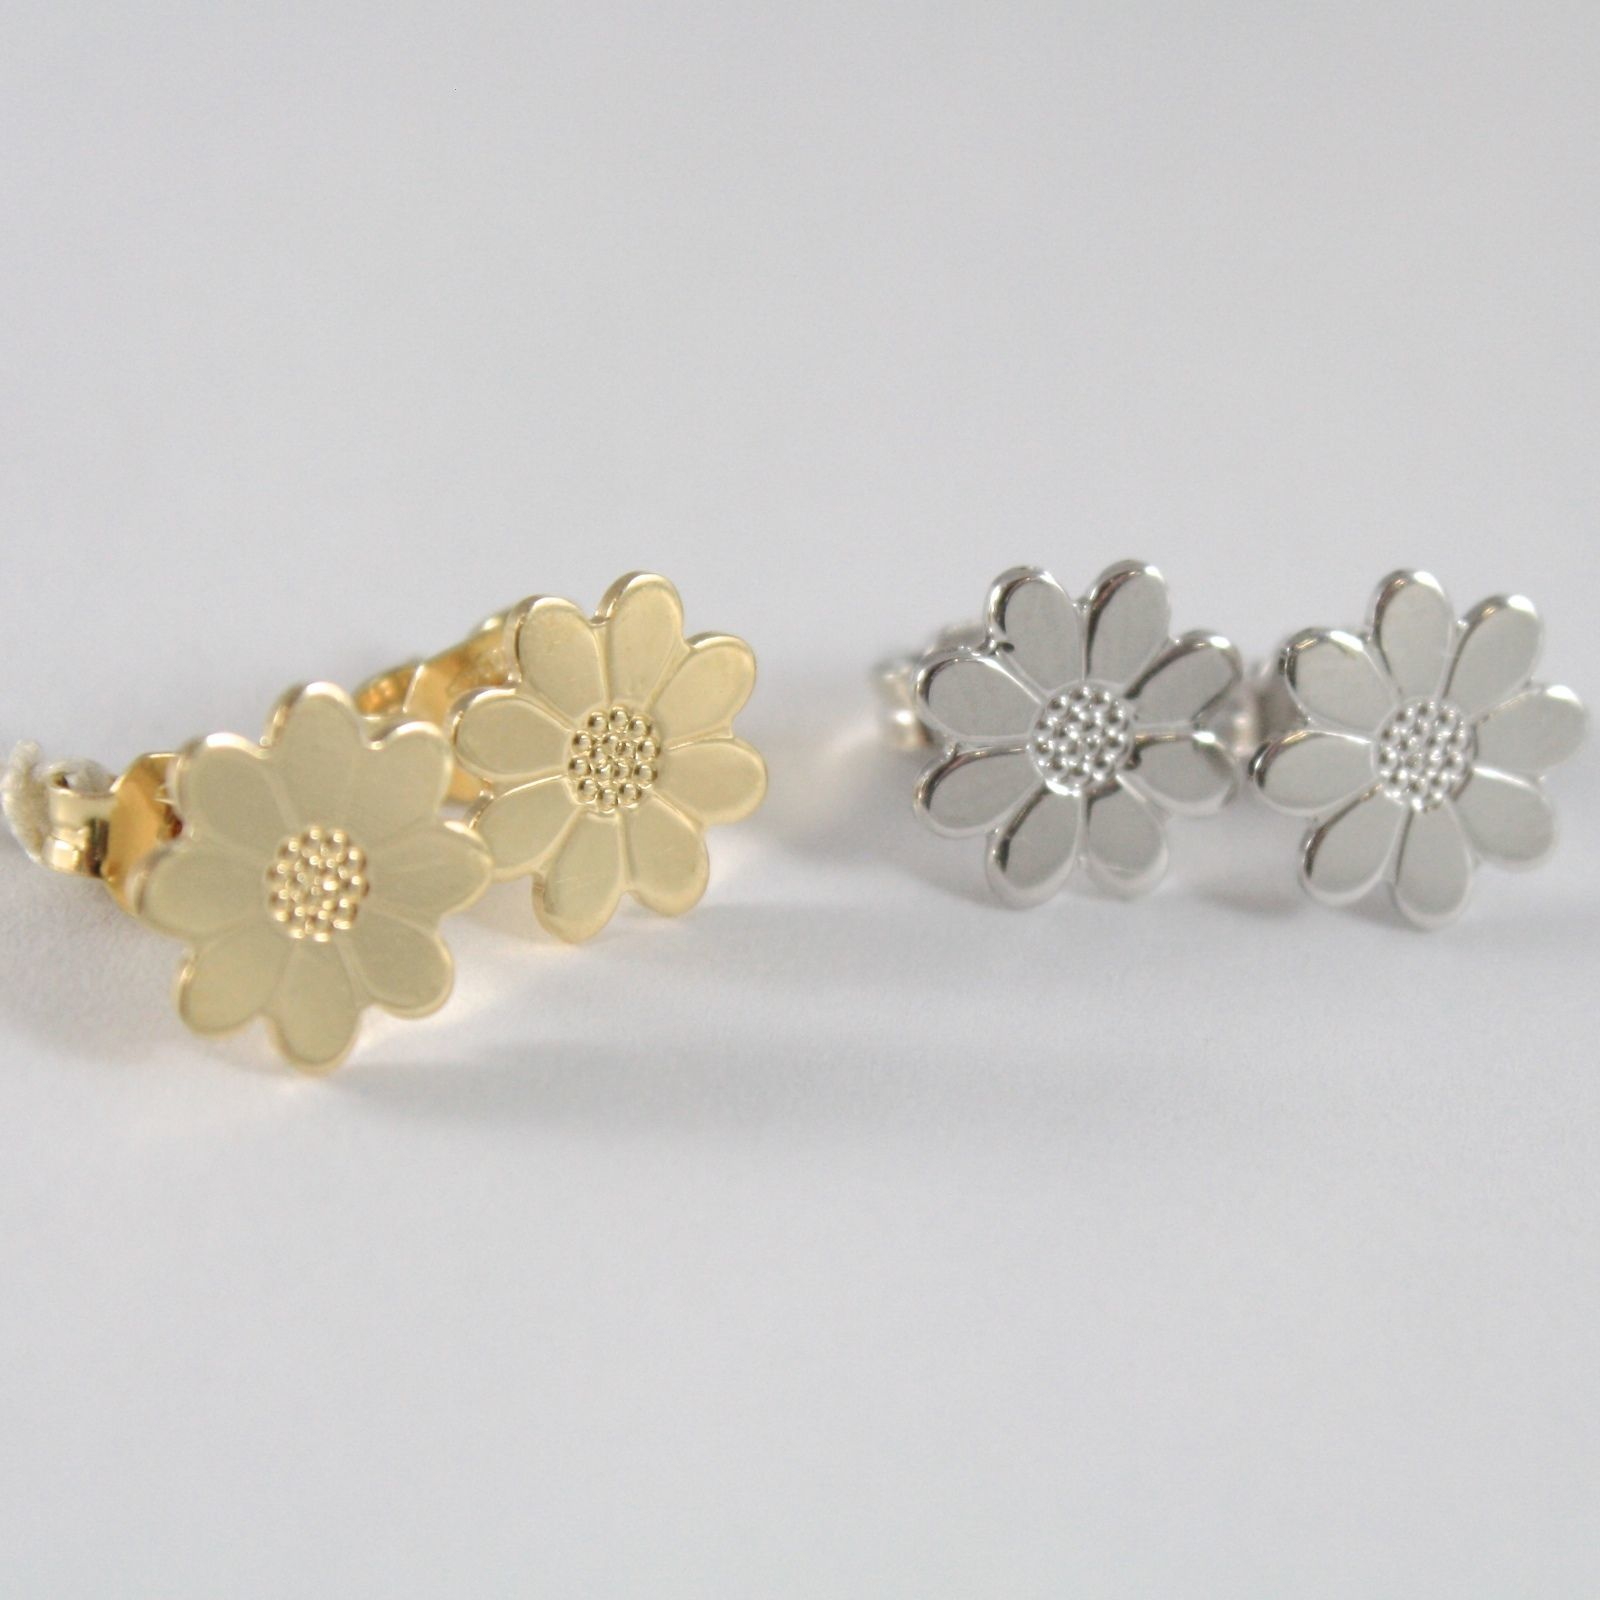 YELLOW GOLD EARRINGS 0,5 WHITE 750 18K, DAISY, FLOWER, LENGTH 0.9 CM